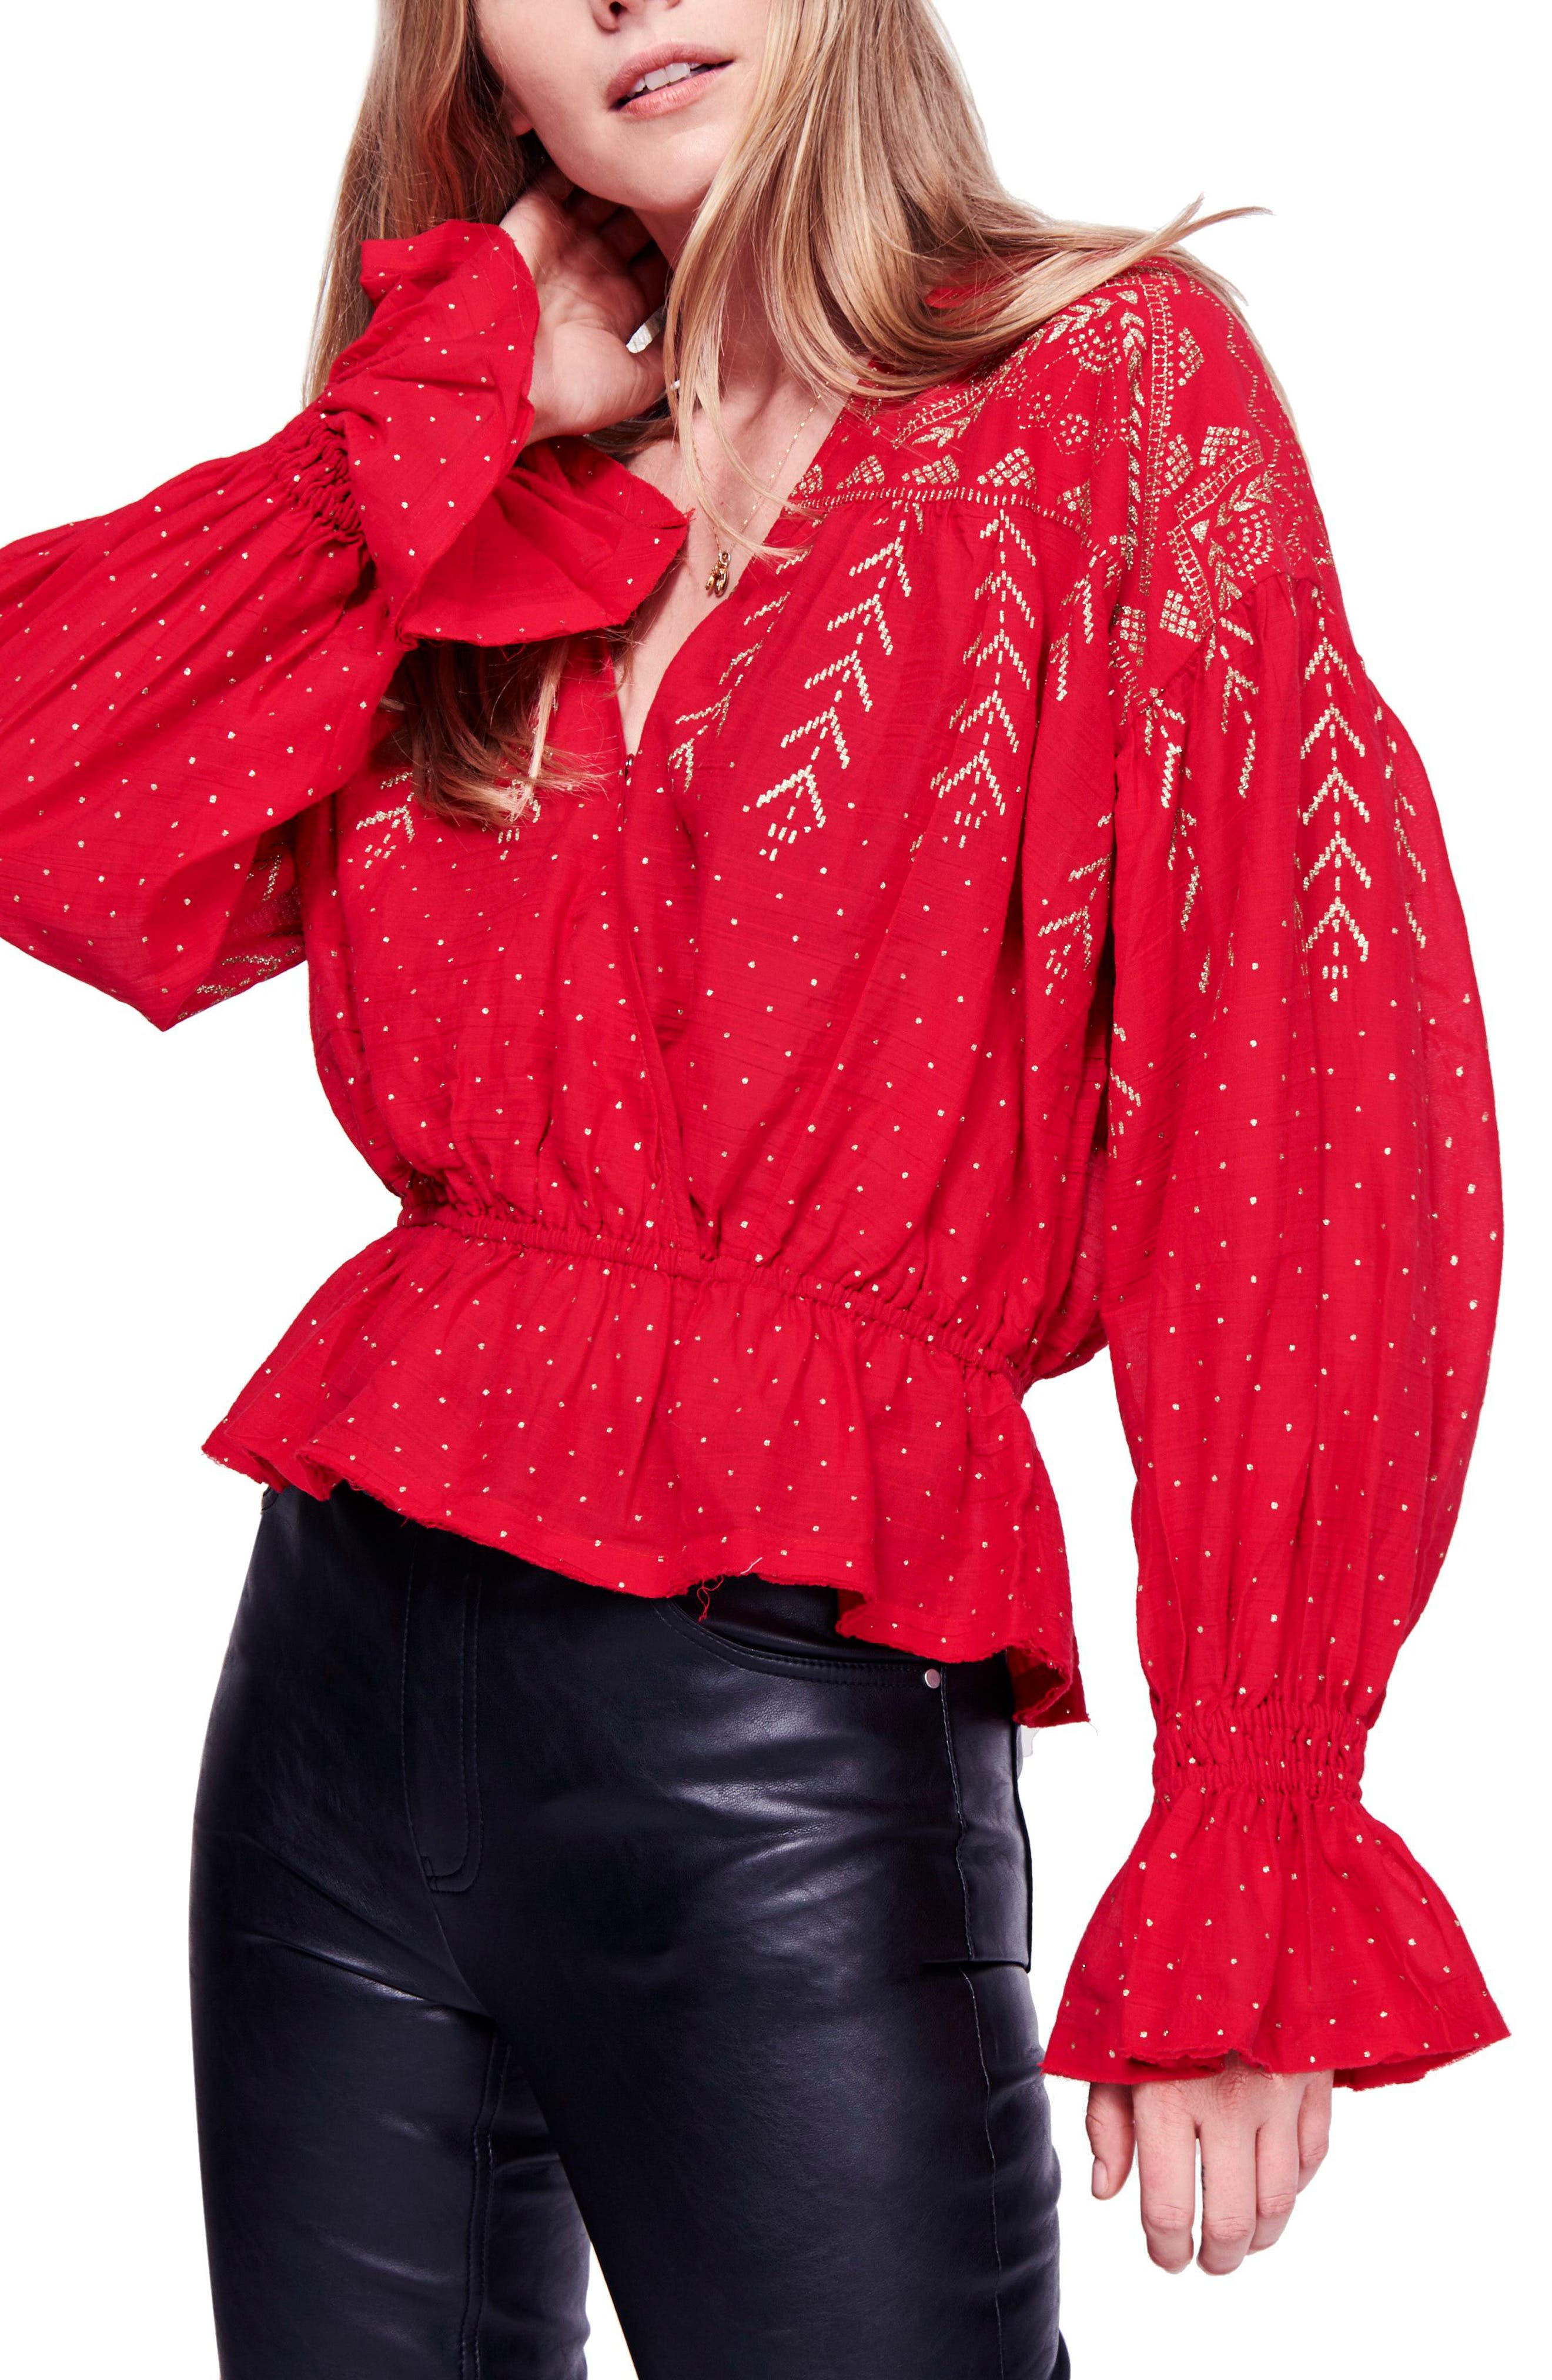 Counting Stars Blouse,                         Main,                         color, RED